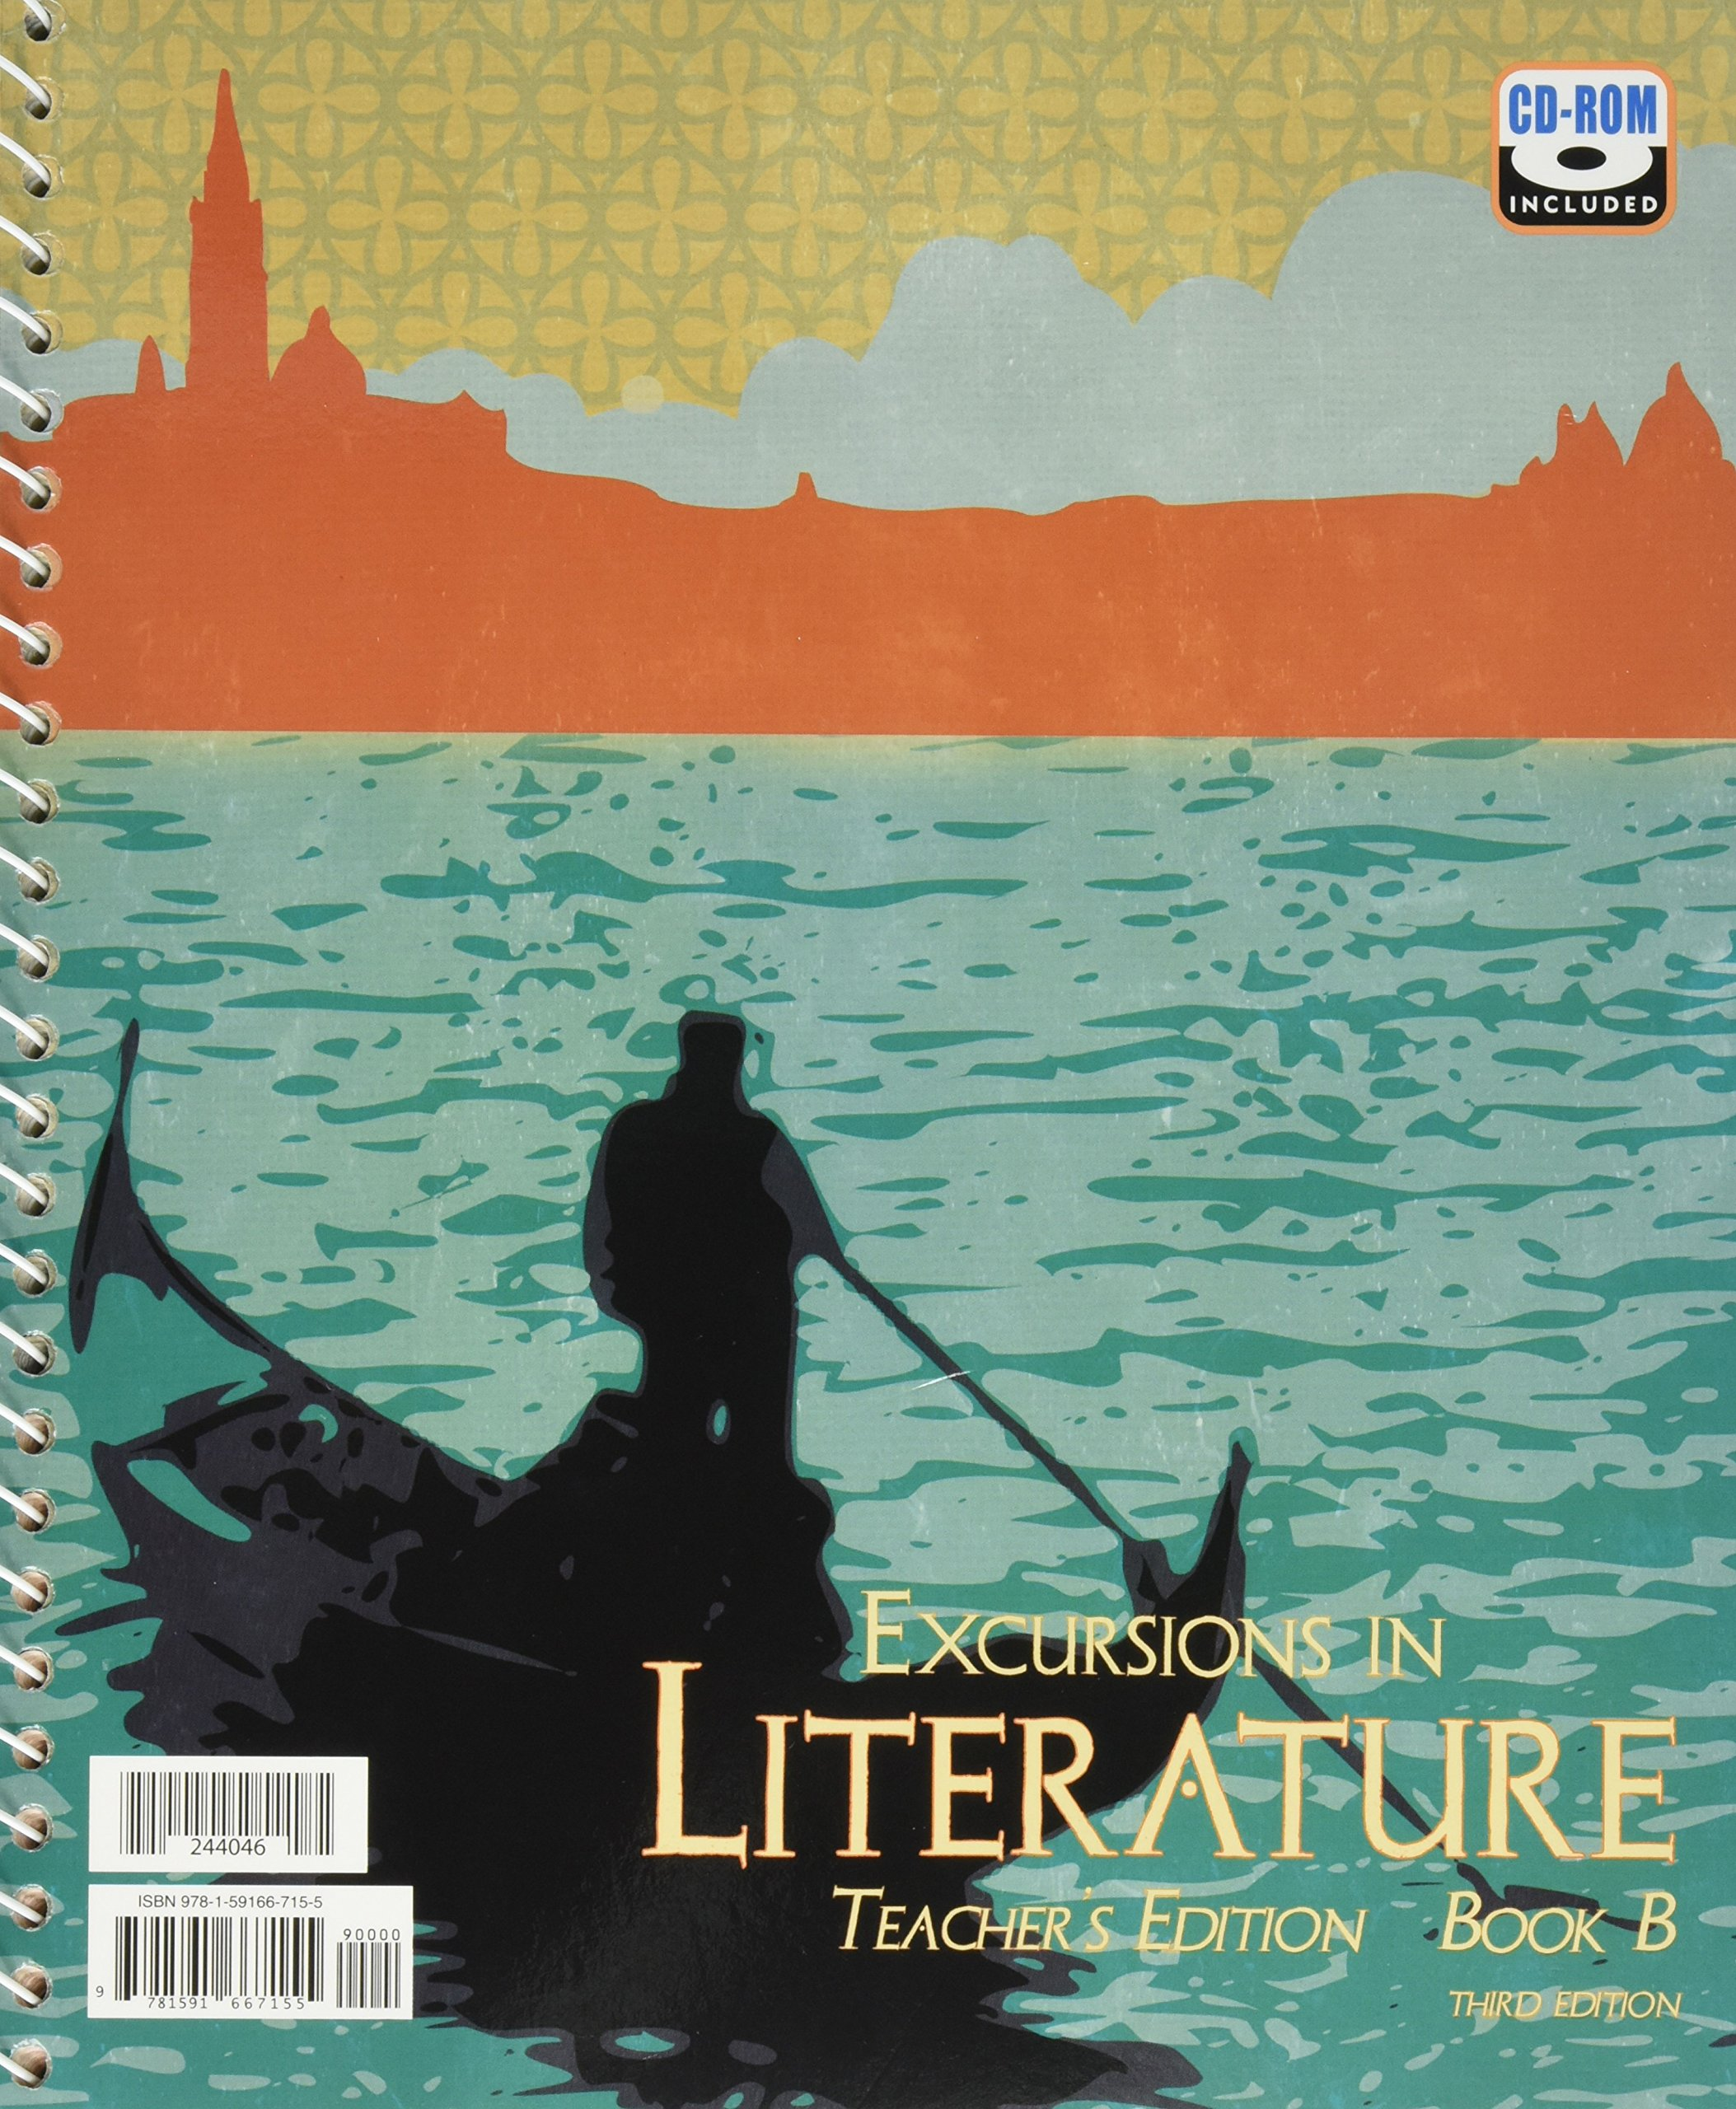 Literature craft and voice 2nd edition - Excursions In Literature Teacher S Edition With Cd 3rd Edition Donnalynn Hess 9781591667155 Amazon Com Books